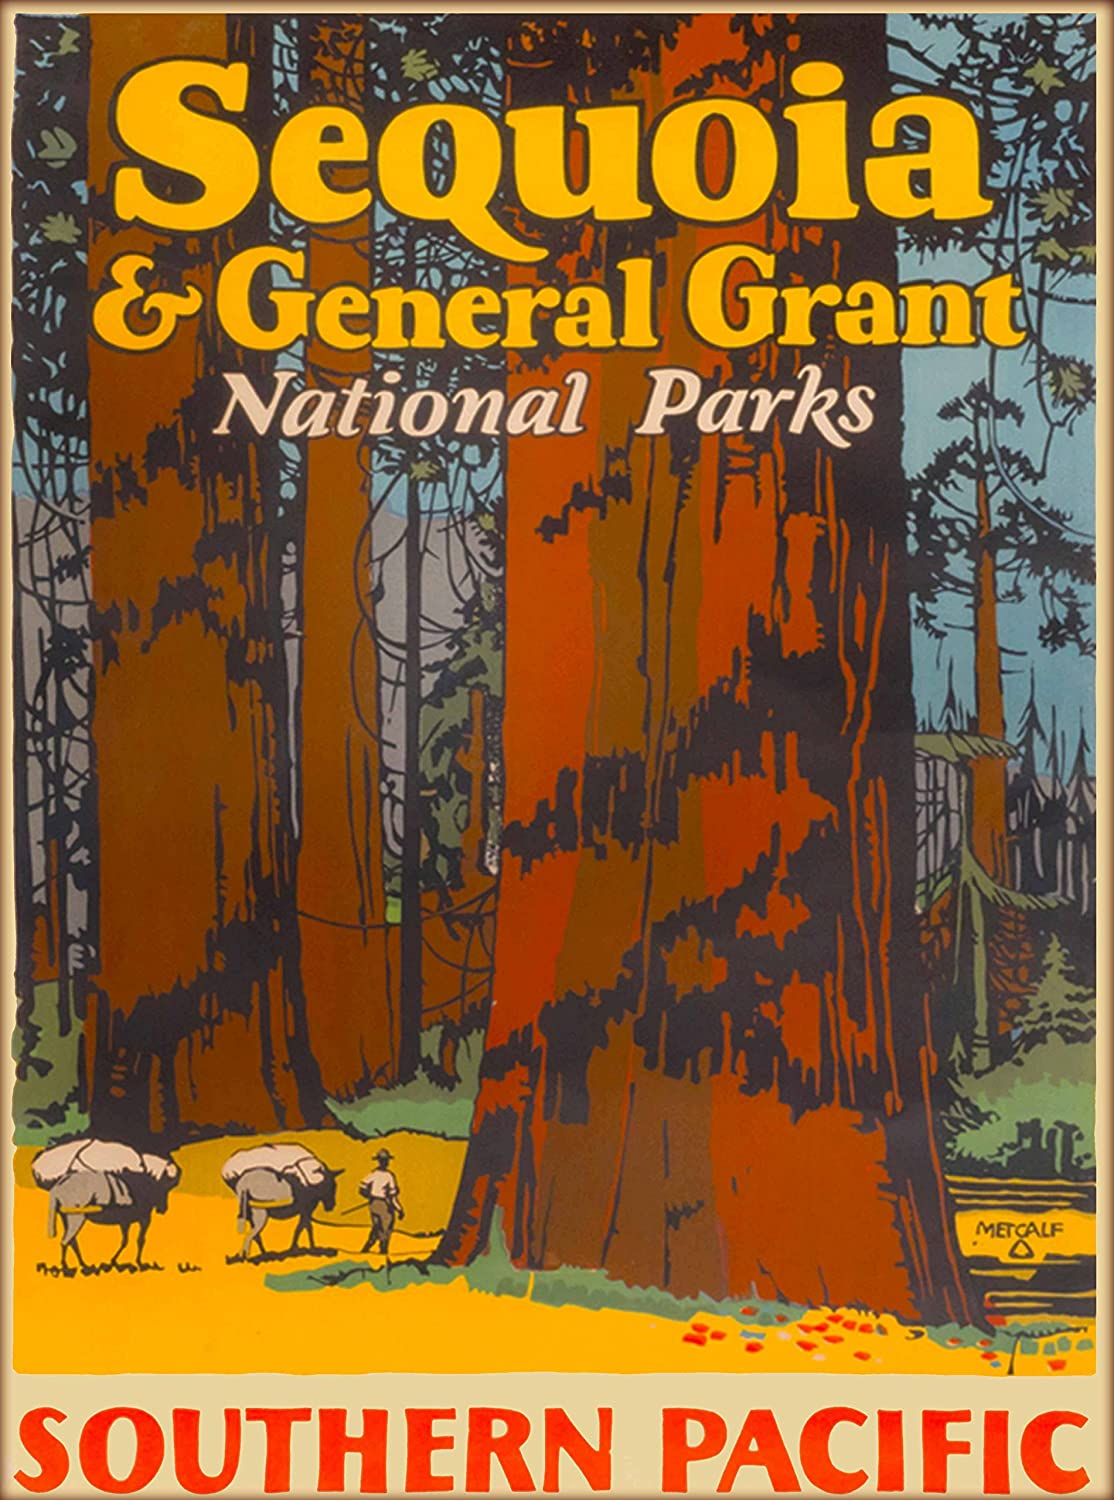 A SLICE IN TIME Sequoia & General Grant National Parks California Southern Pacific Vintage Railroad United States of America Travel Advertisement Art Poster Print. Measures 10 x 13.5 inches